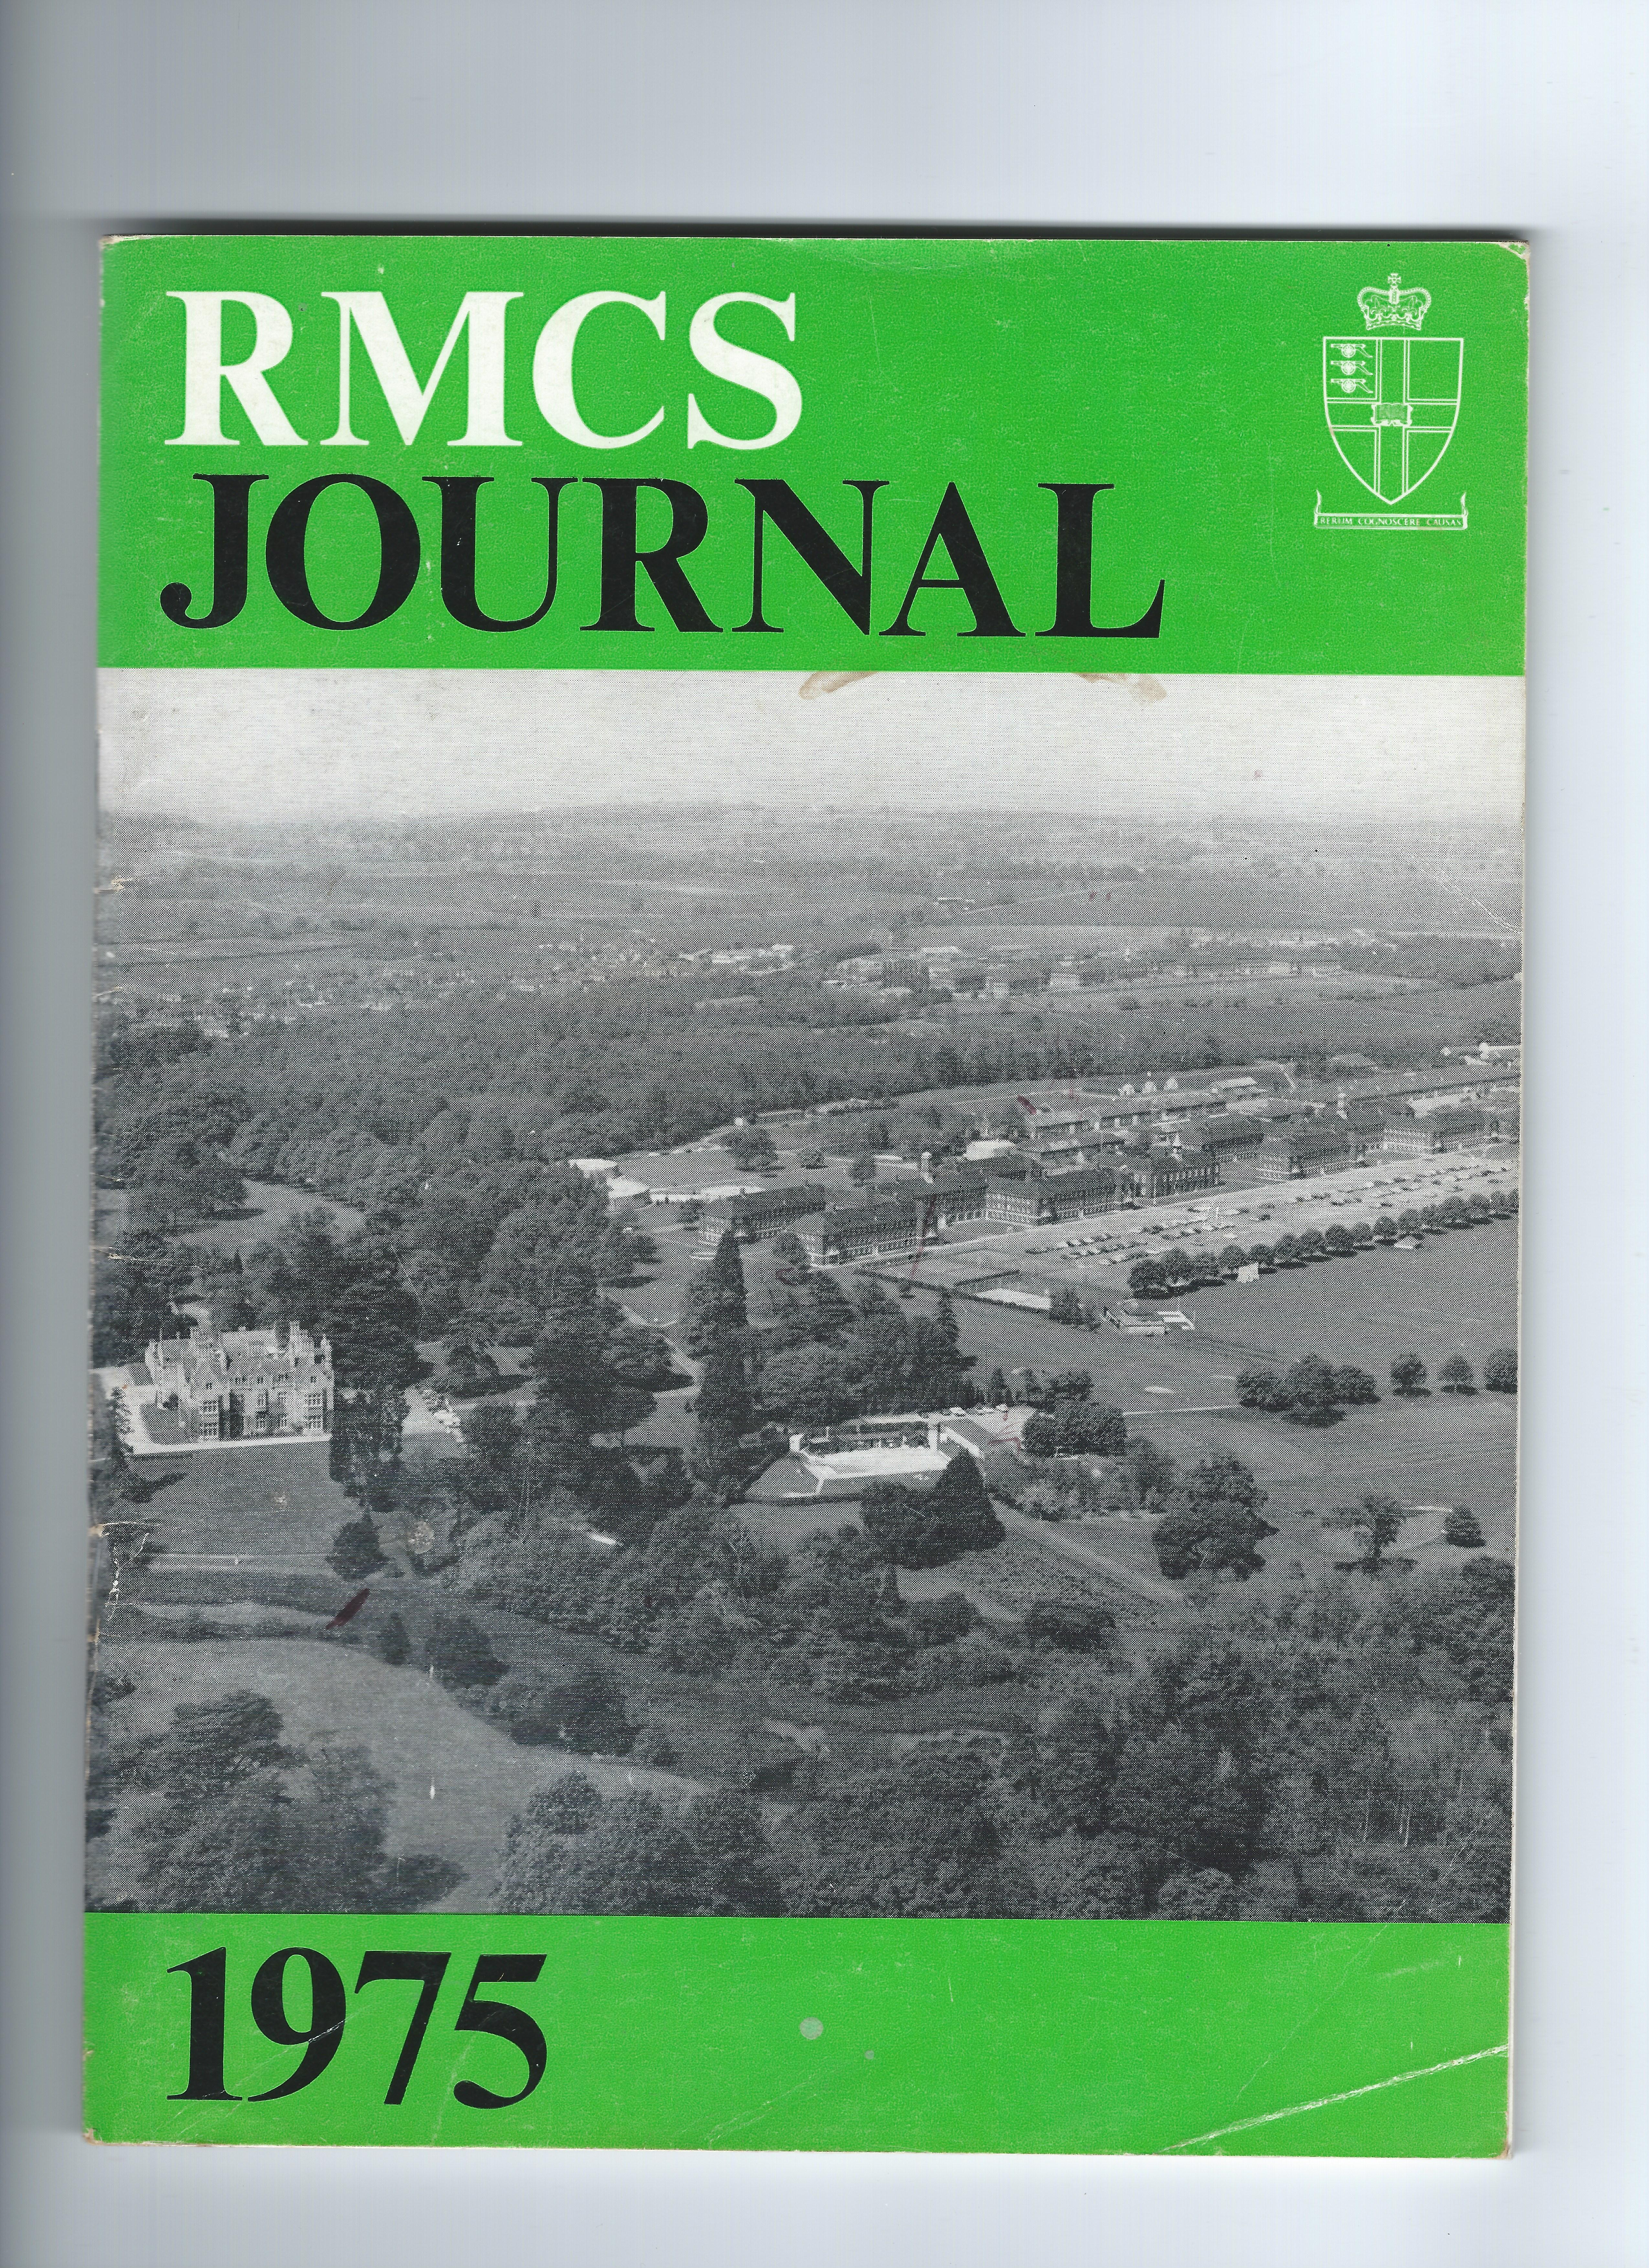 Cover of one of the Journals